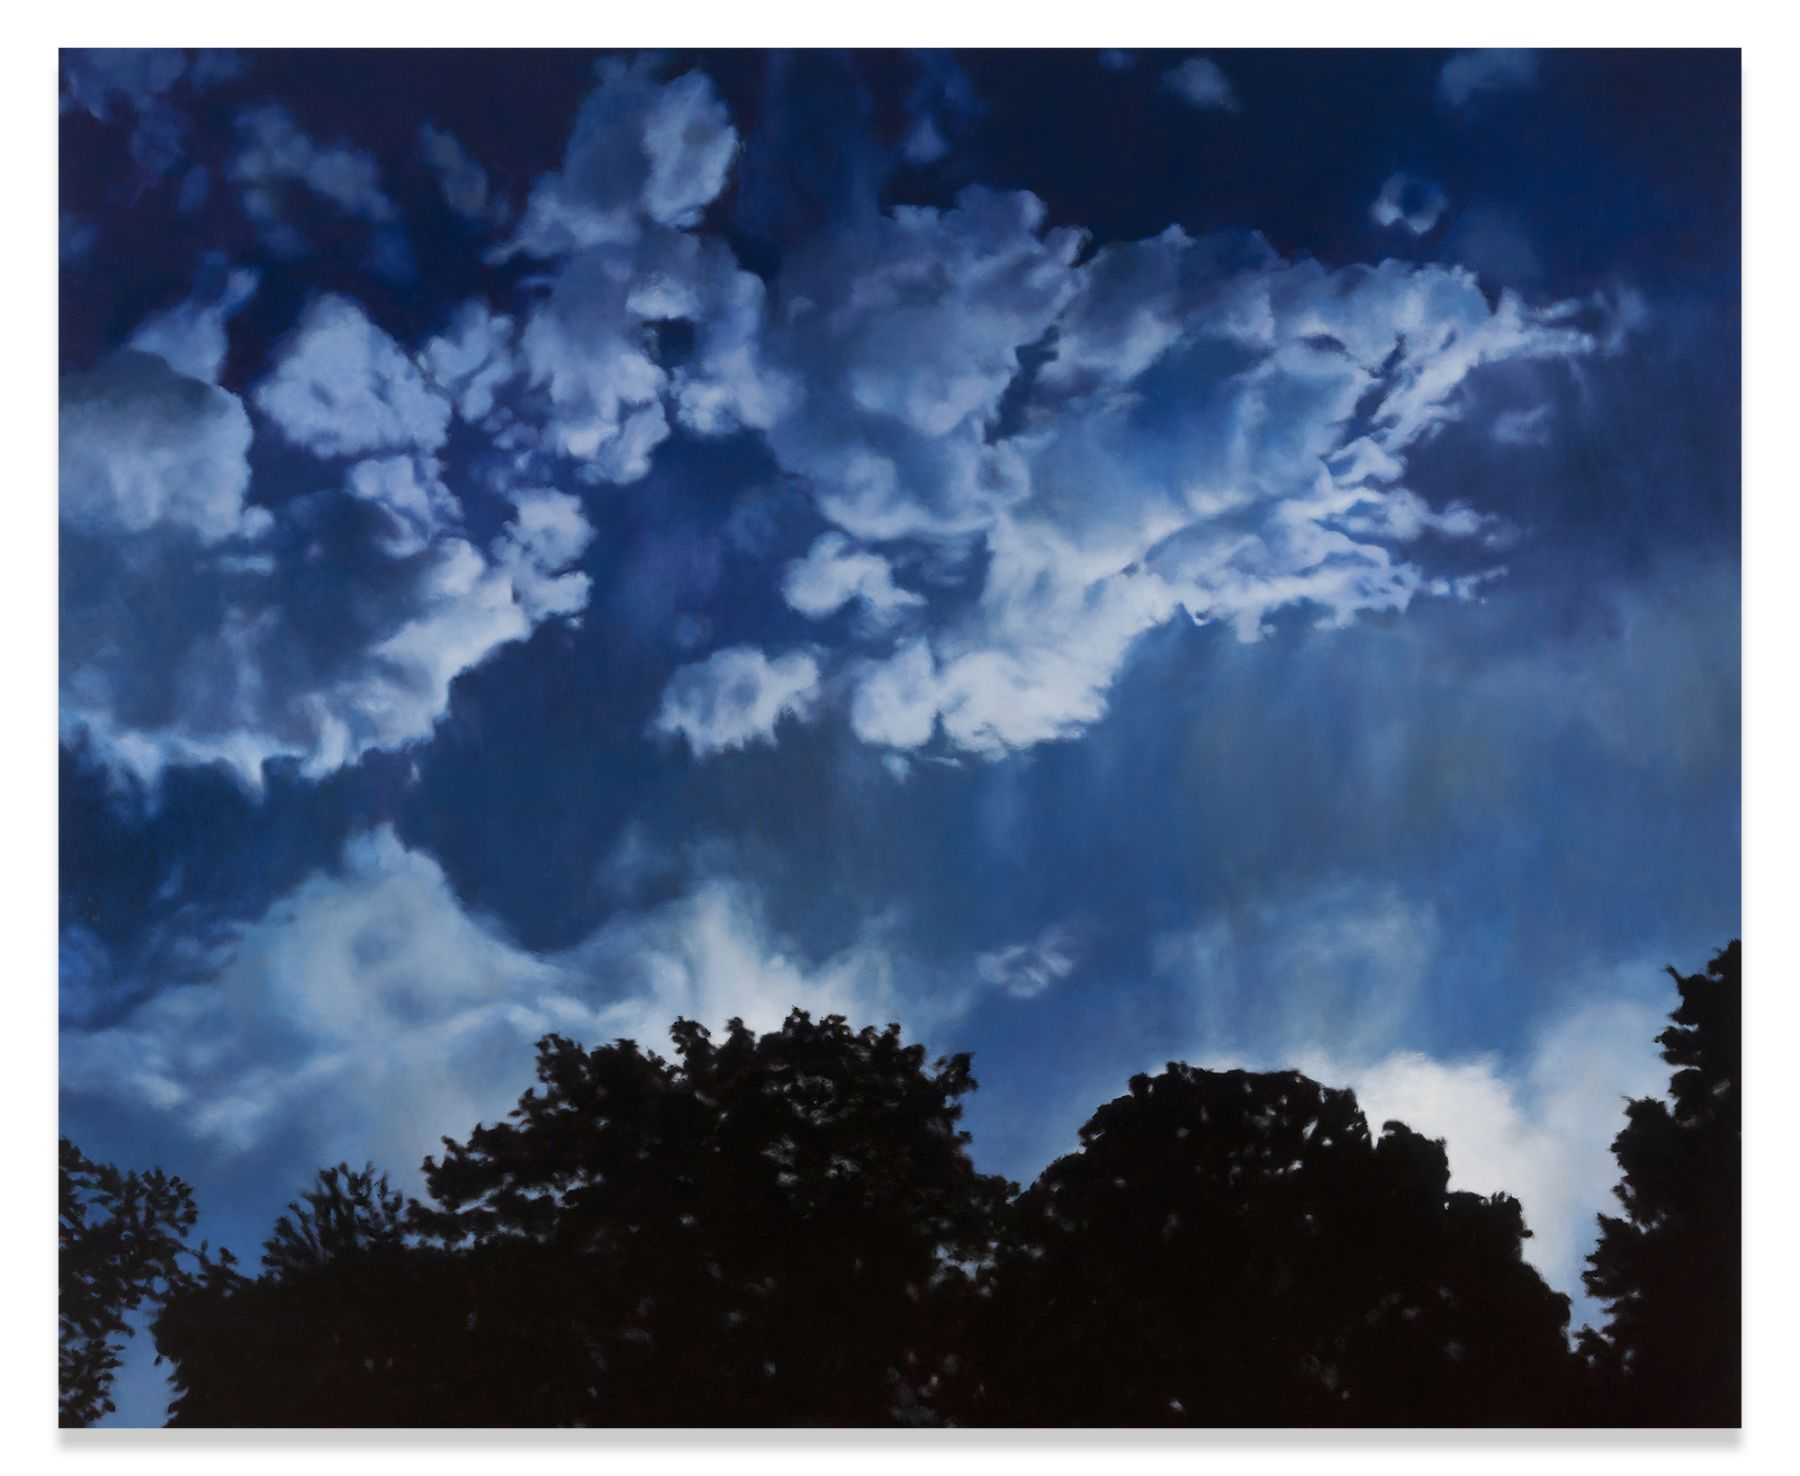 Blue Day, Blue Night, 2016, Oil on linen, 73 x 88 1/2 inches,185.4 x 224.8 cm,MMG#30402